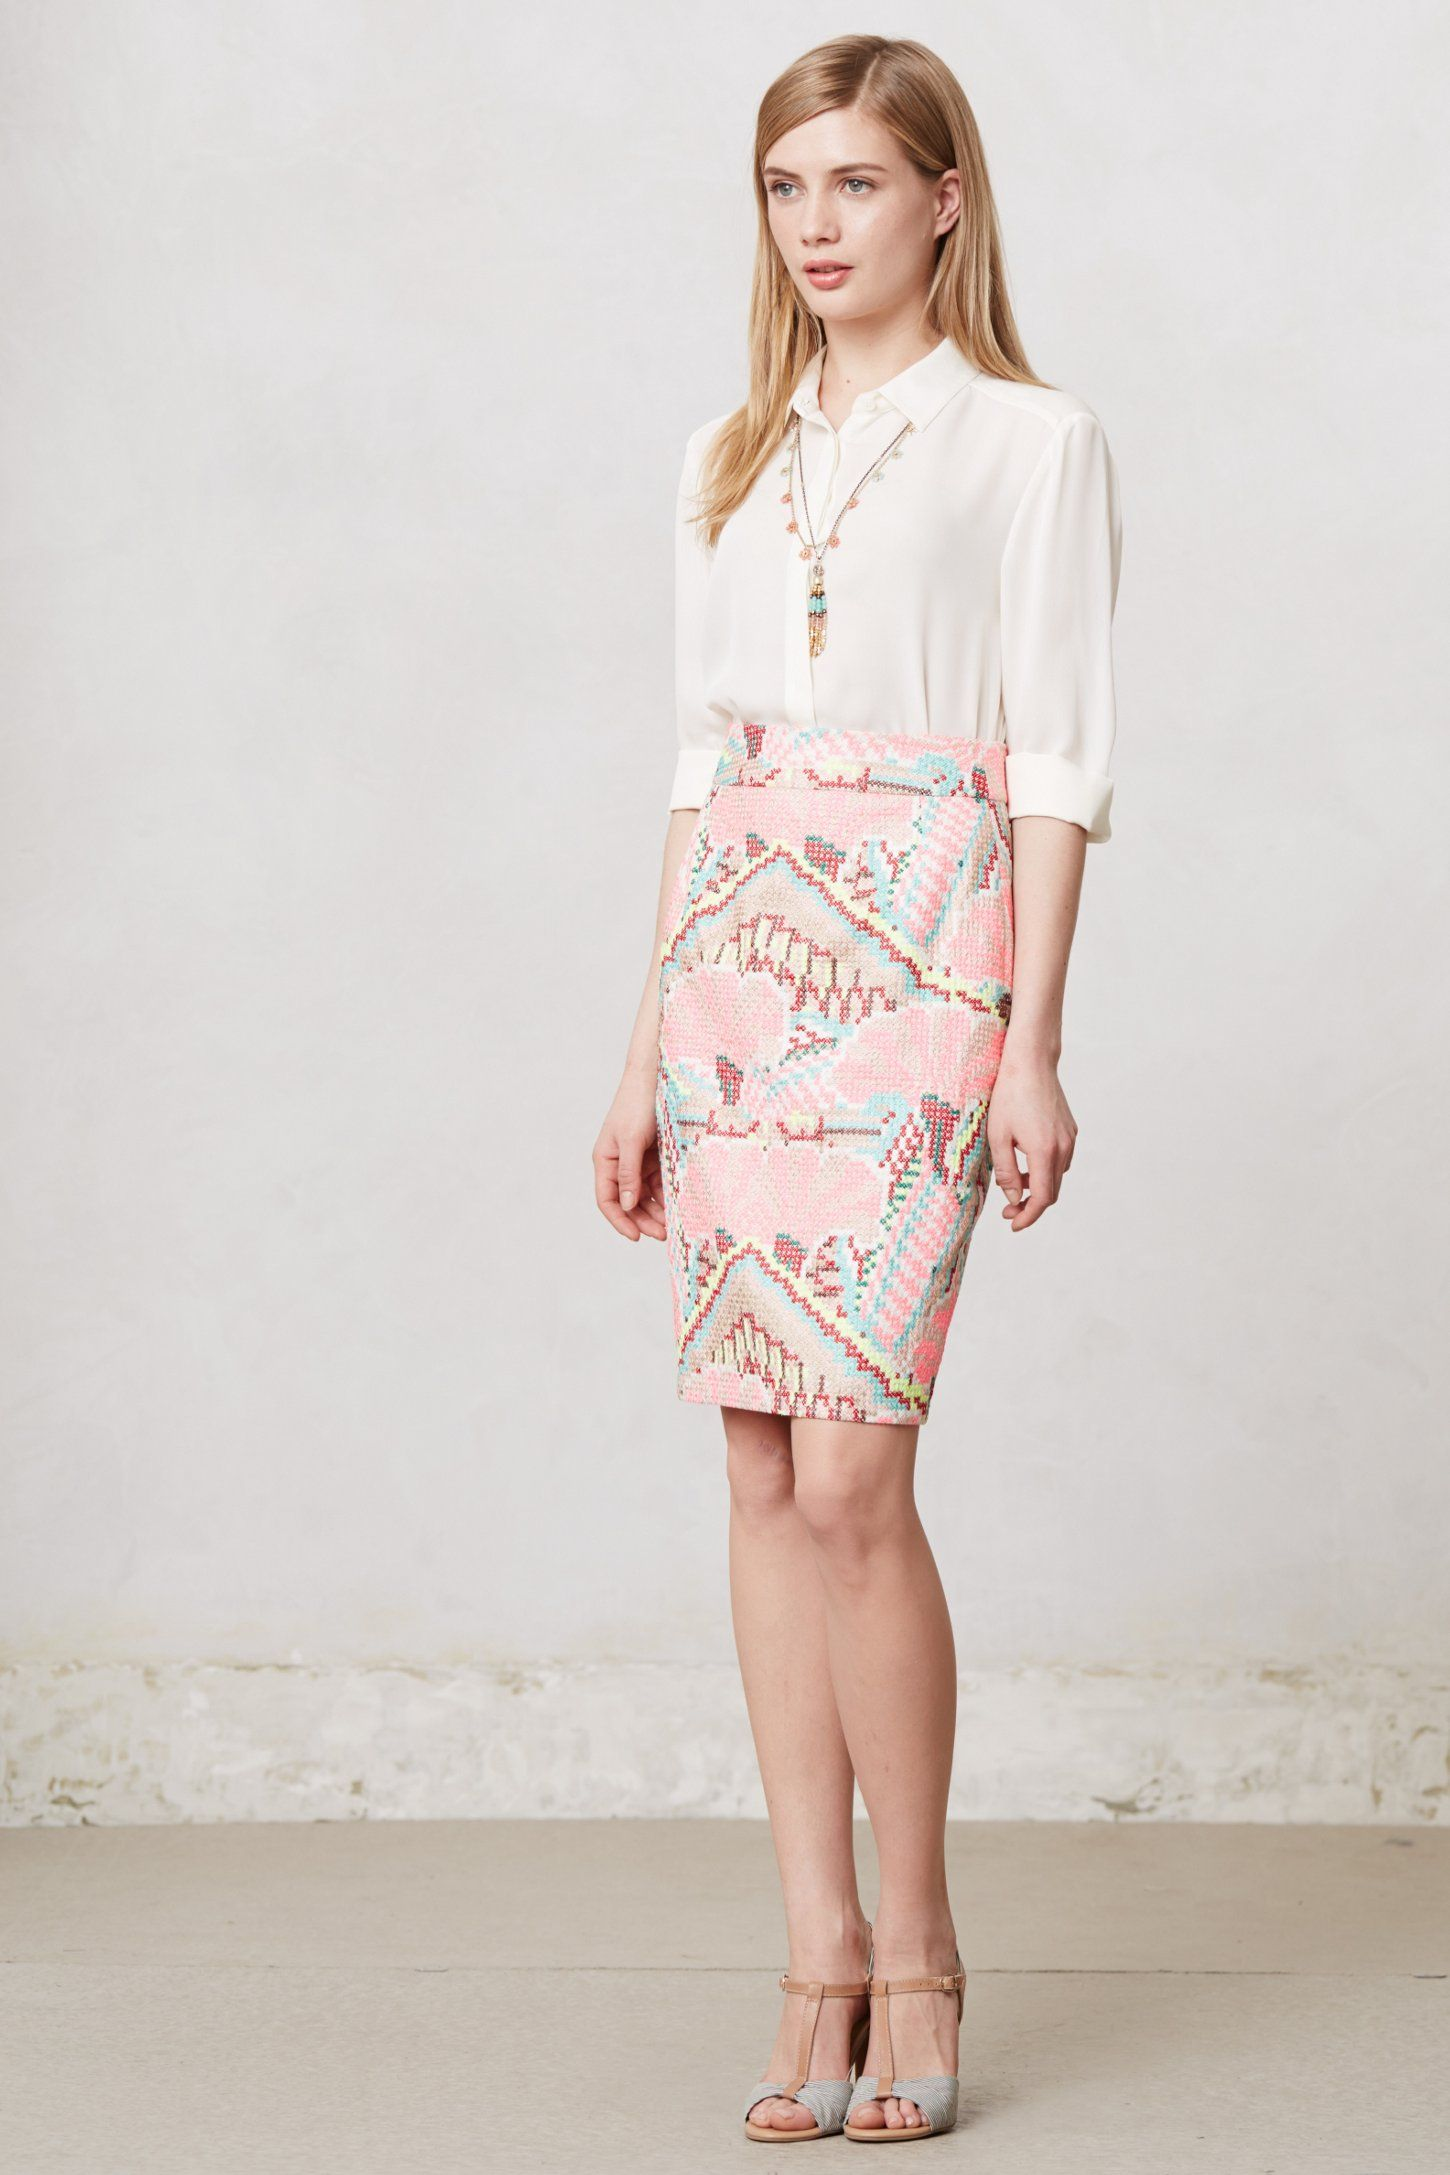 Daksha Stitched Skirt - to go with that top!